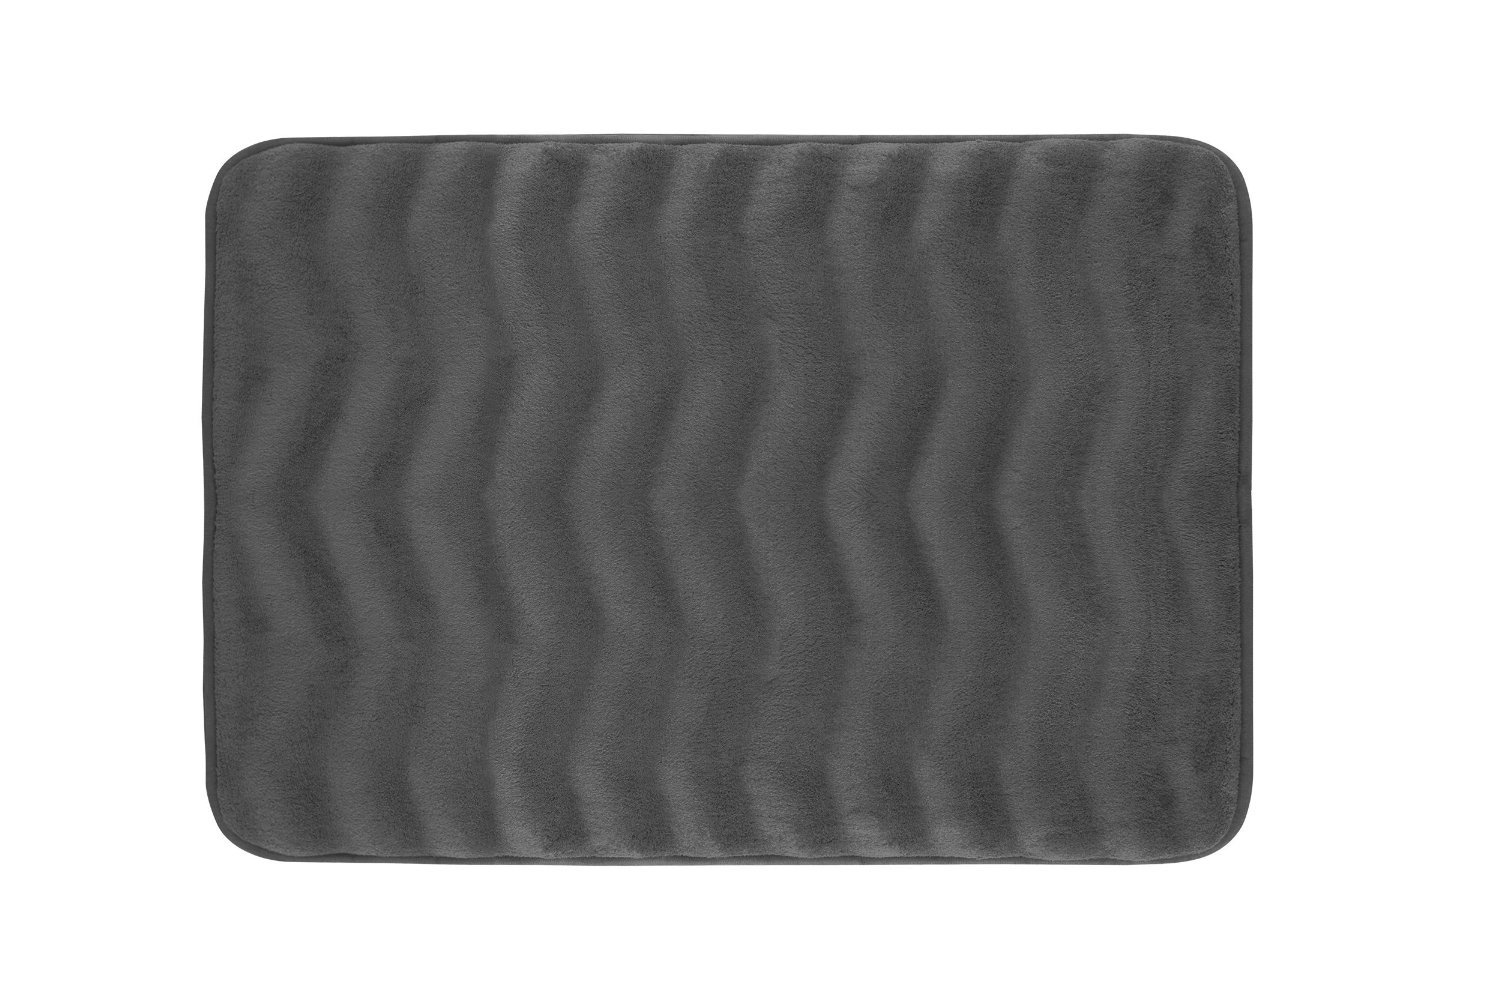 Hlc me soft and absorbent extra thick non skid backing for Charcoal grey bathroom accessories